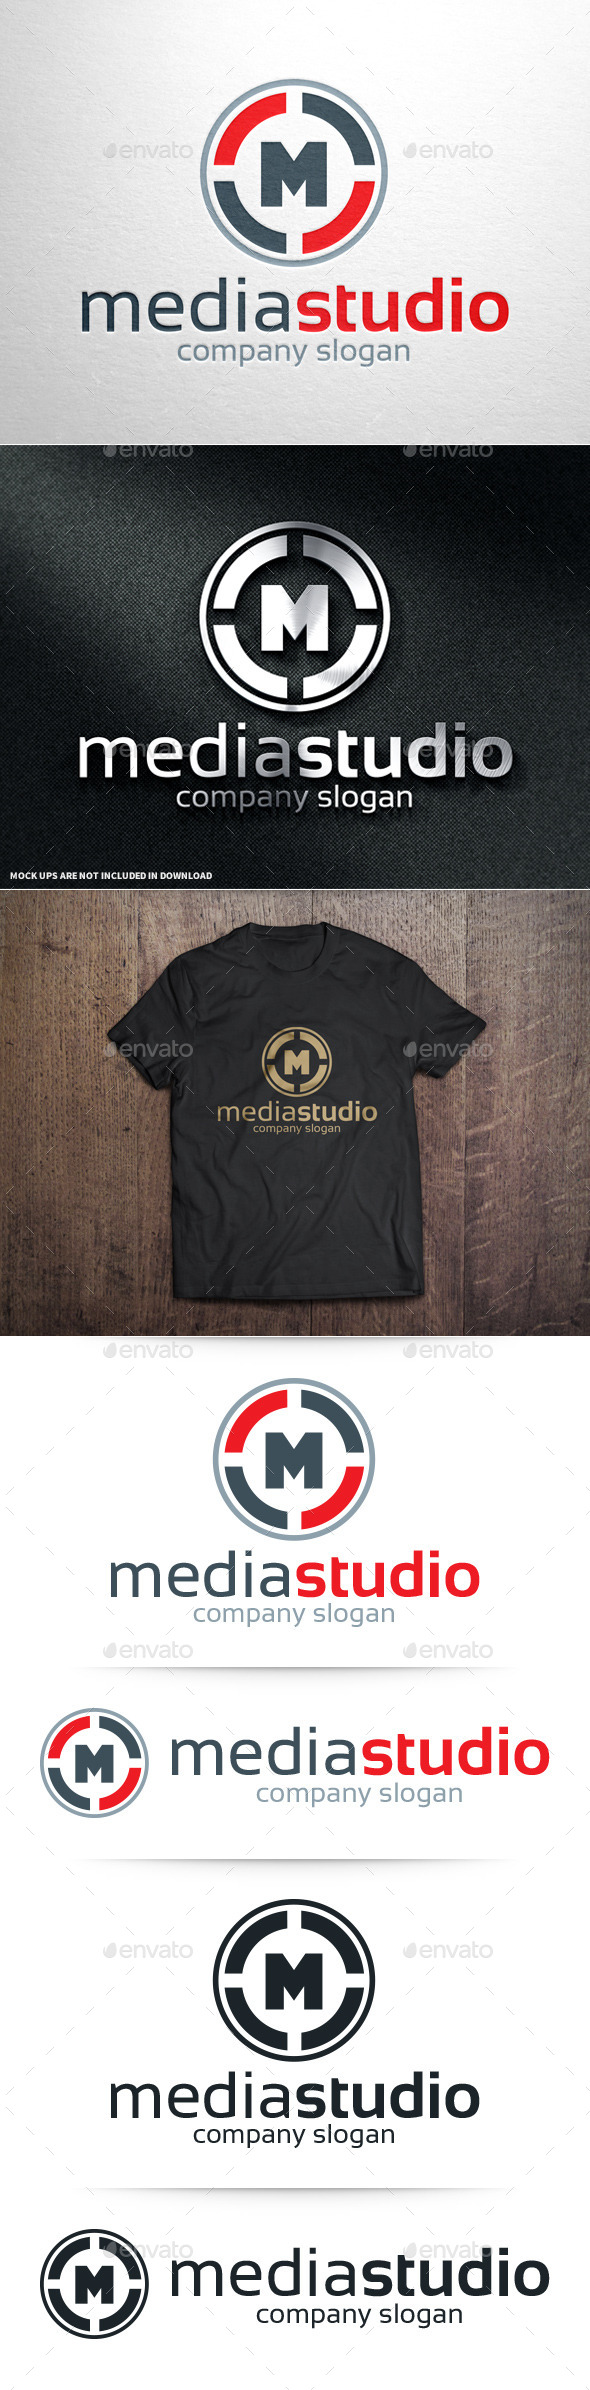 GraphicRiver Media Studio Letter M Logo 10755222